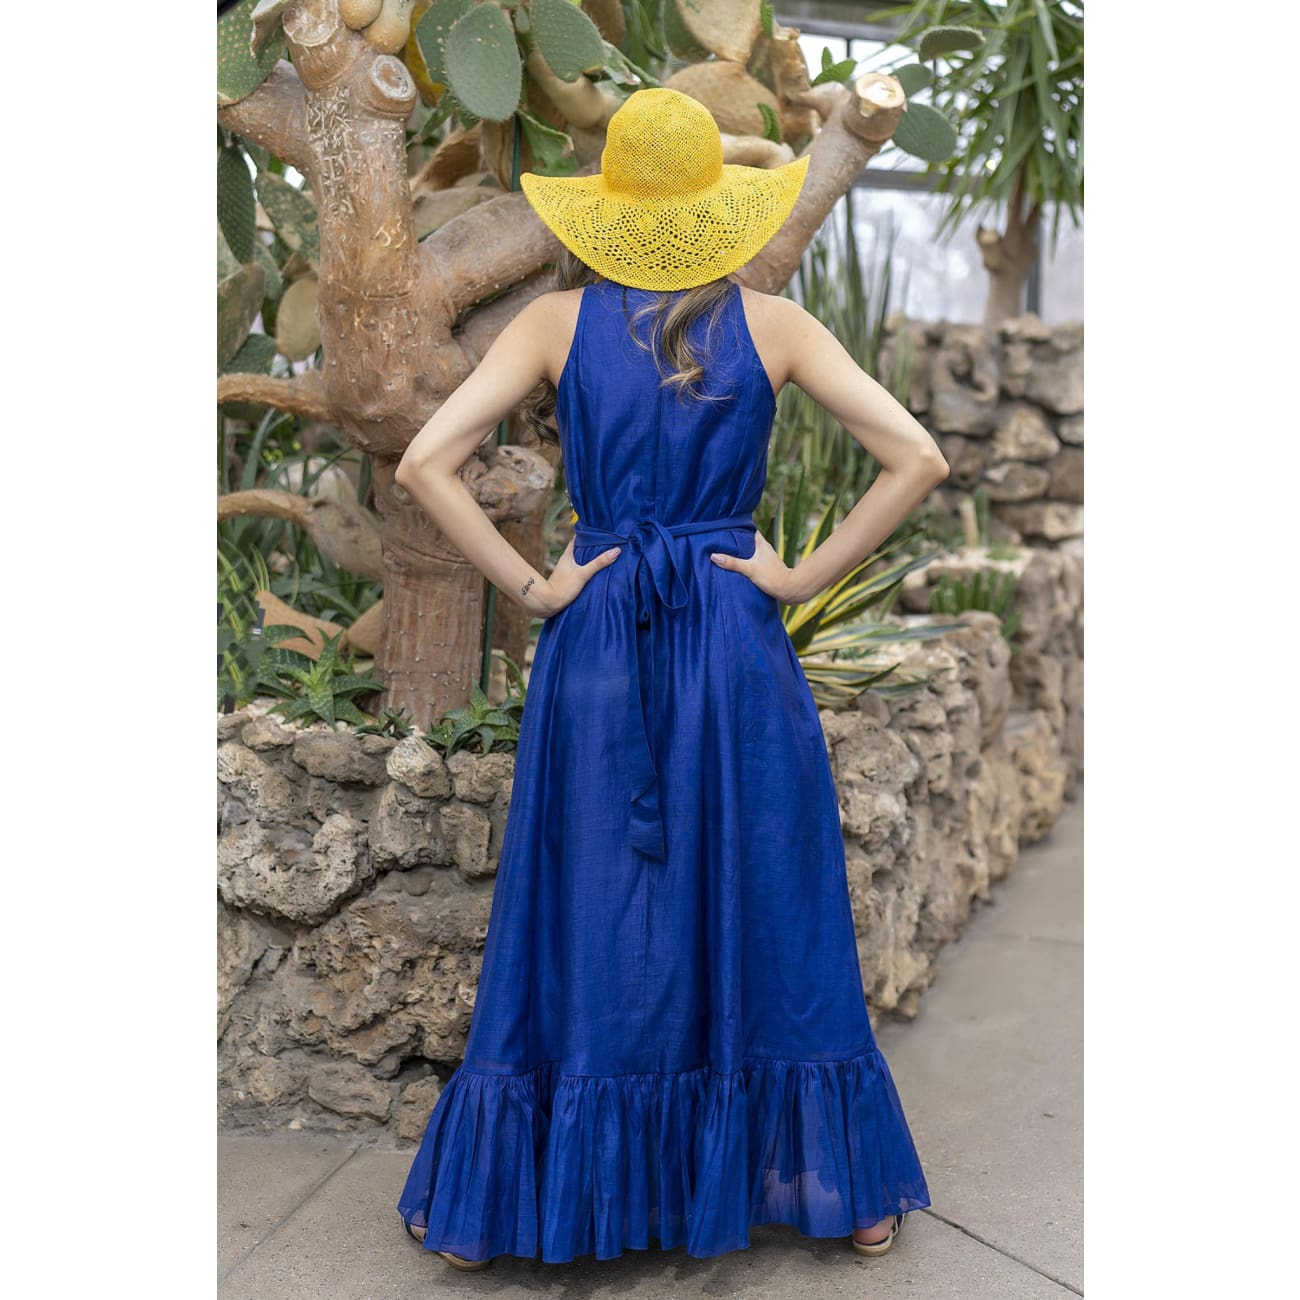 Isa Silk Blue Maxi Dress Dresses Sandhya Garg Free Shipping beach dress Bohemian Bohemian Dress Boho Chic cruise dress